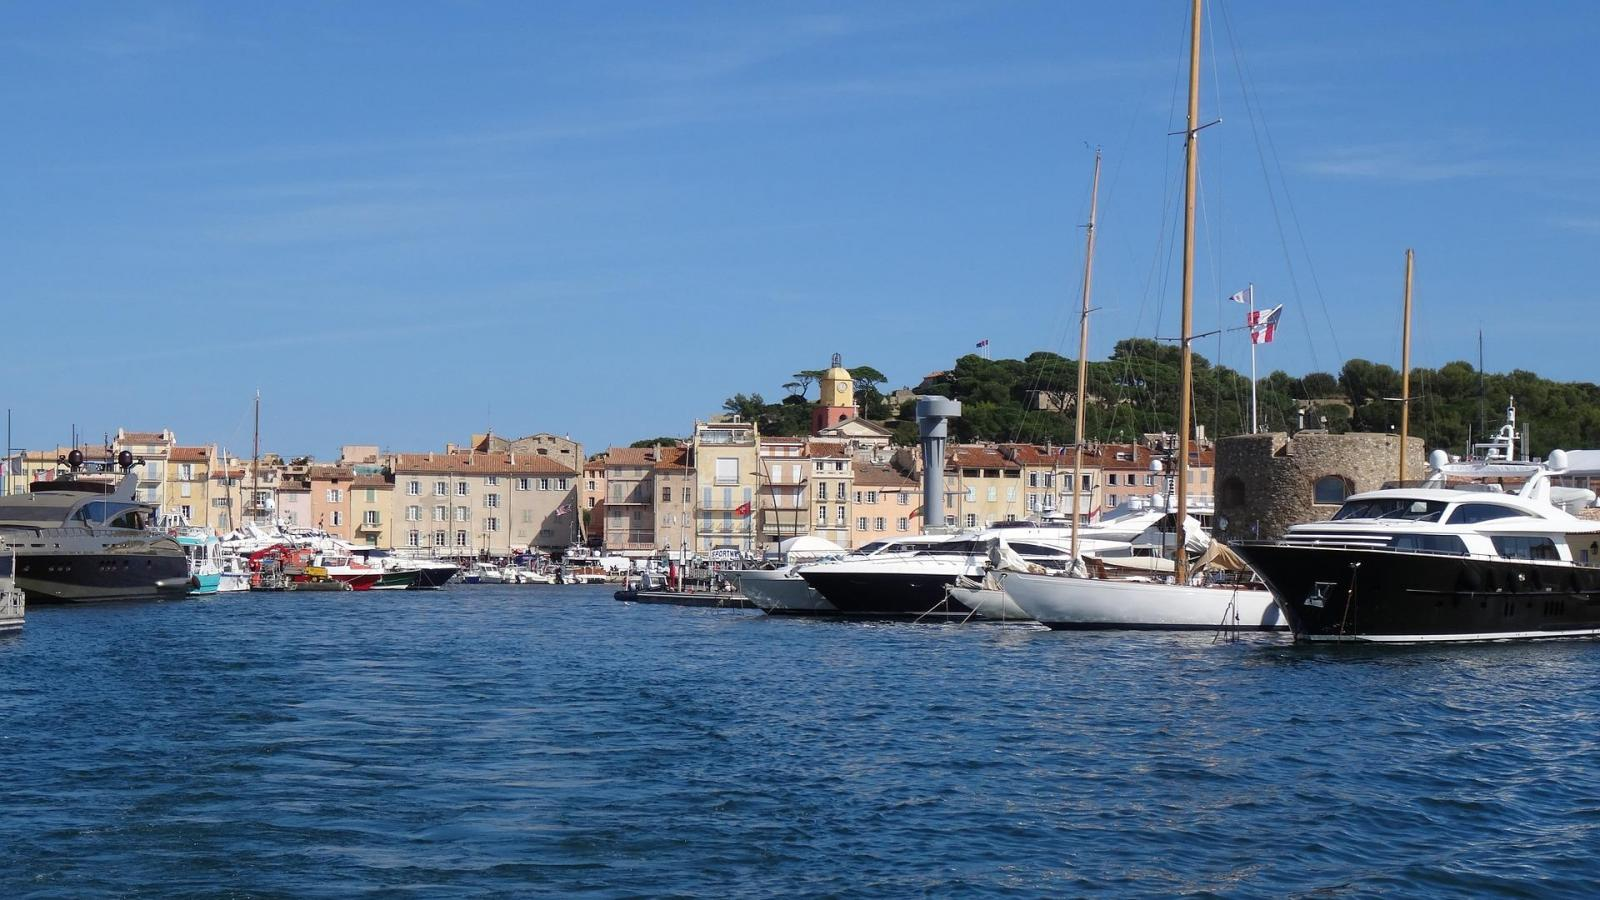 All about the sea in Saint-Tropez